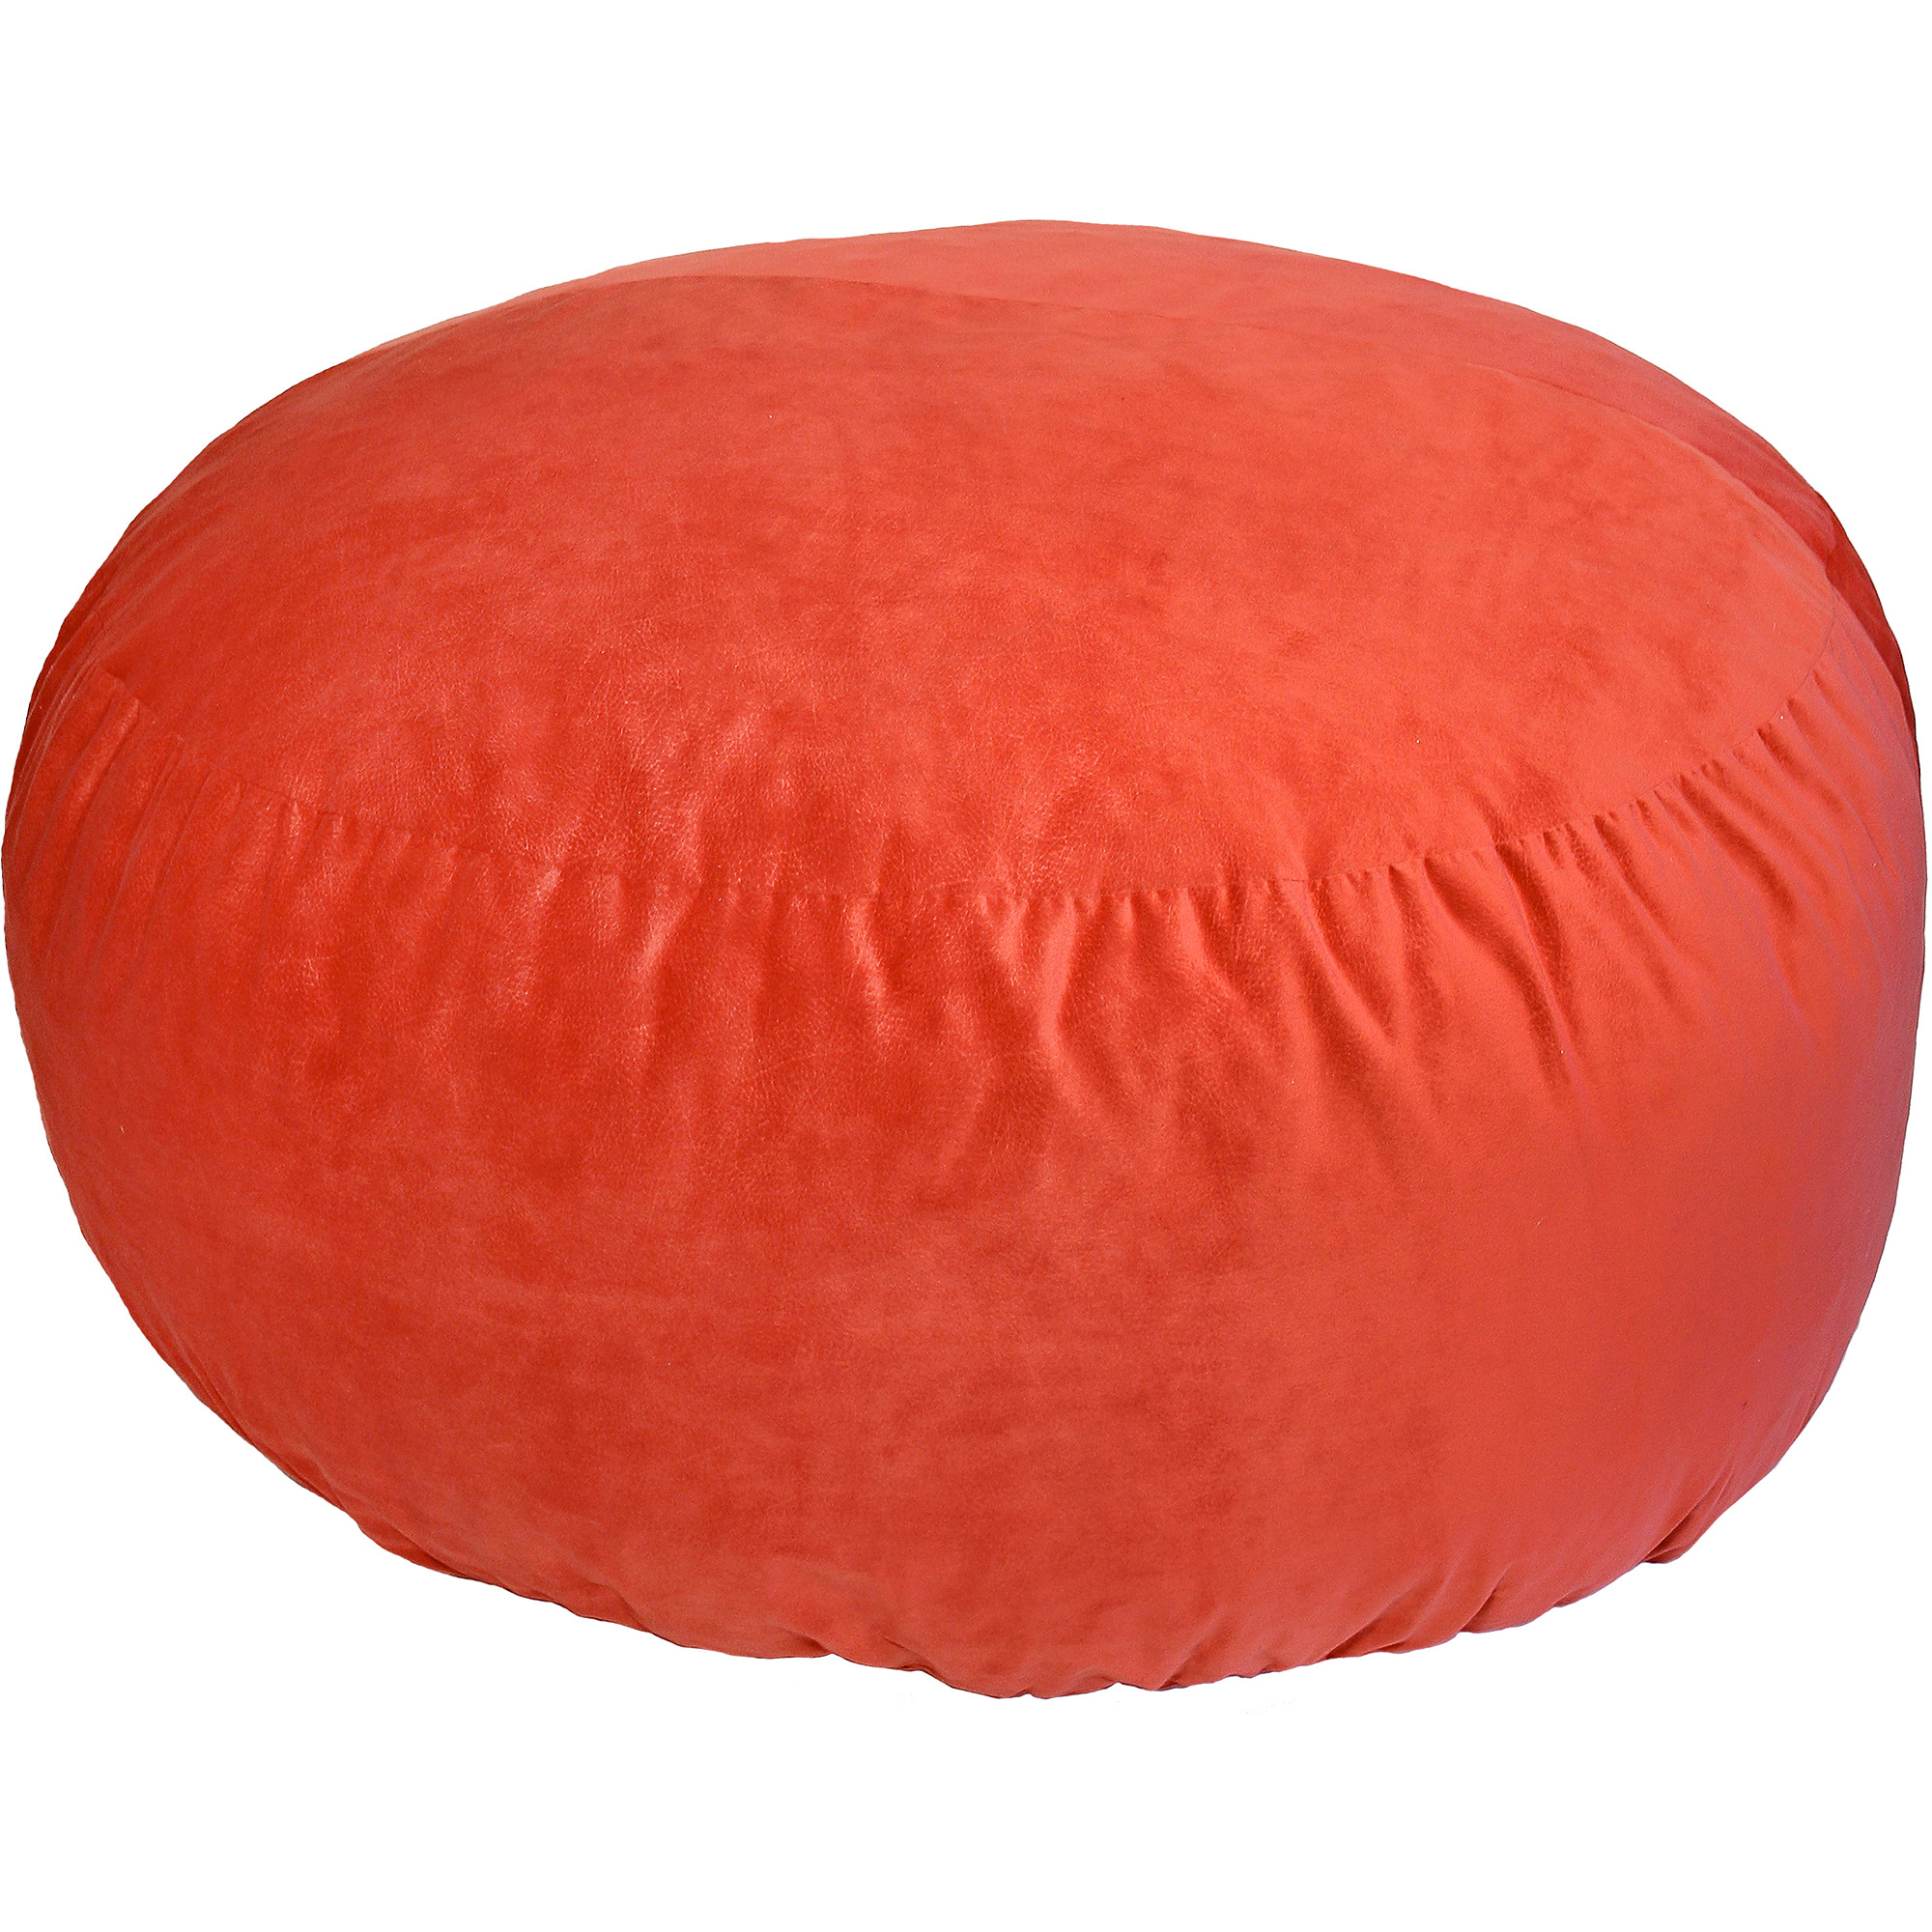 5' Comfort Cloud Foam Bean Bag